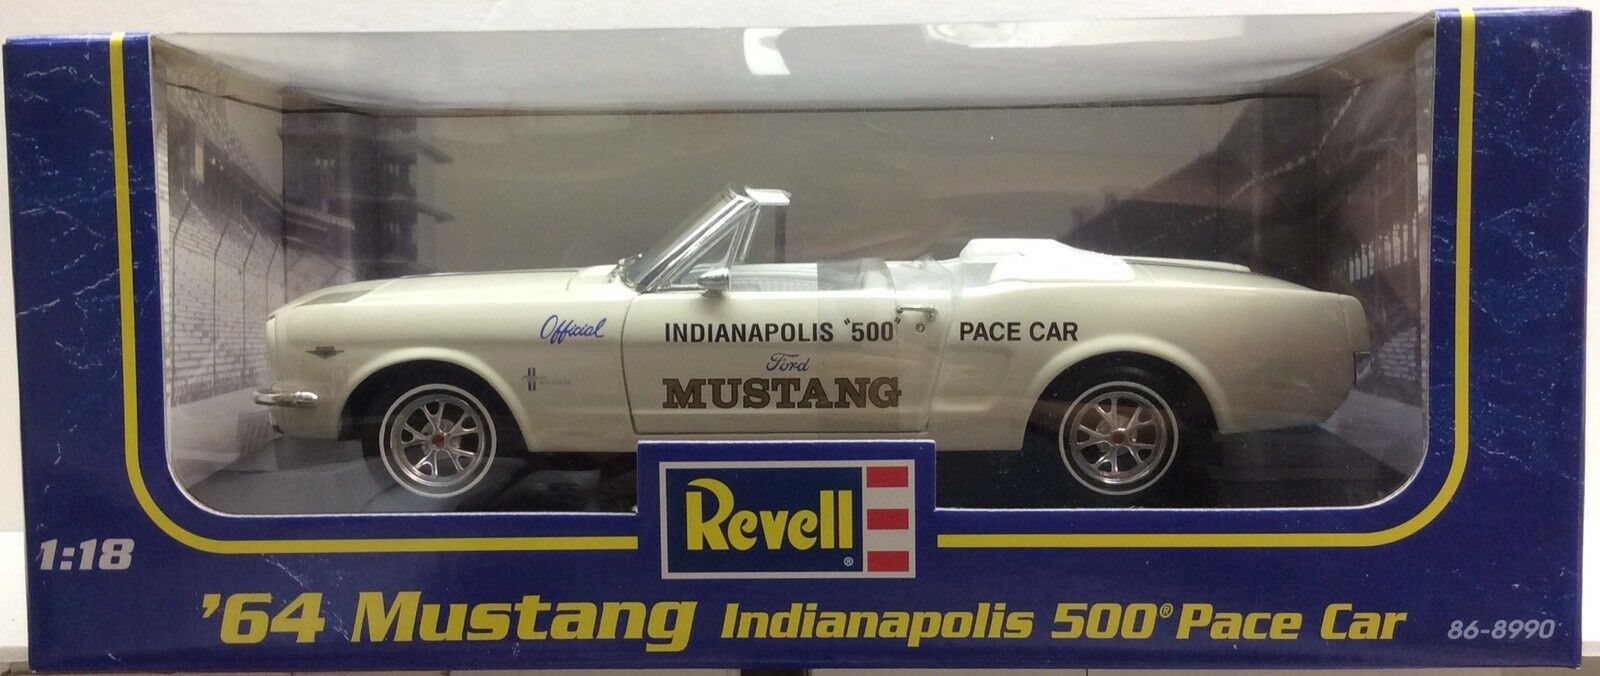 Revell 86-8990 1964 Mustang Indianapolis 500 Pace Car 1 18 Scale Die cast